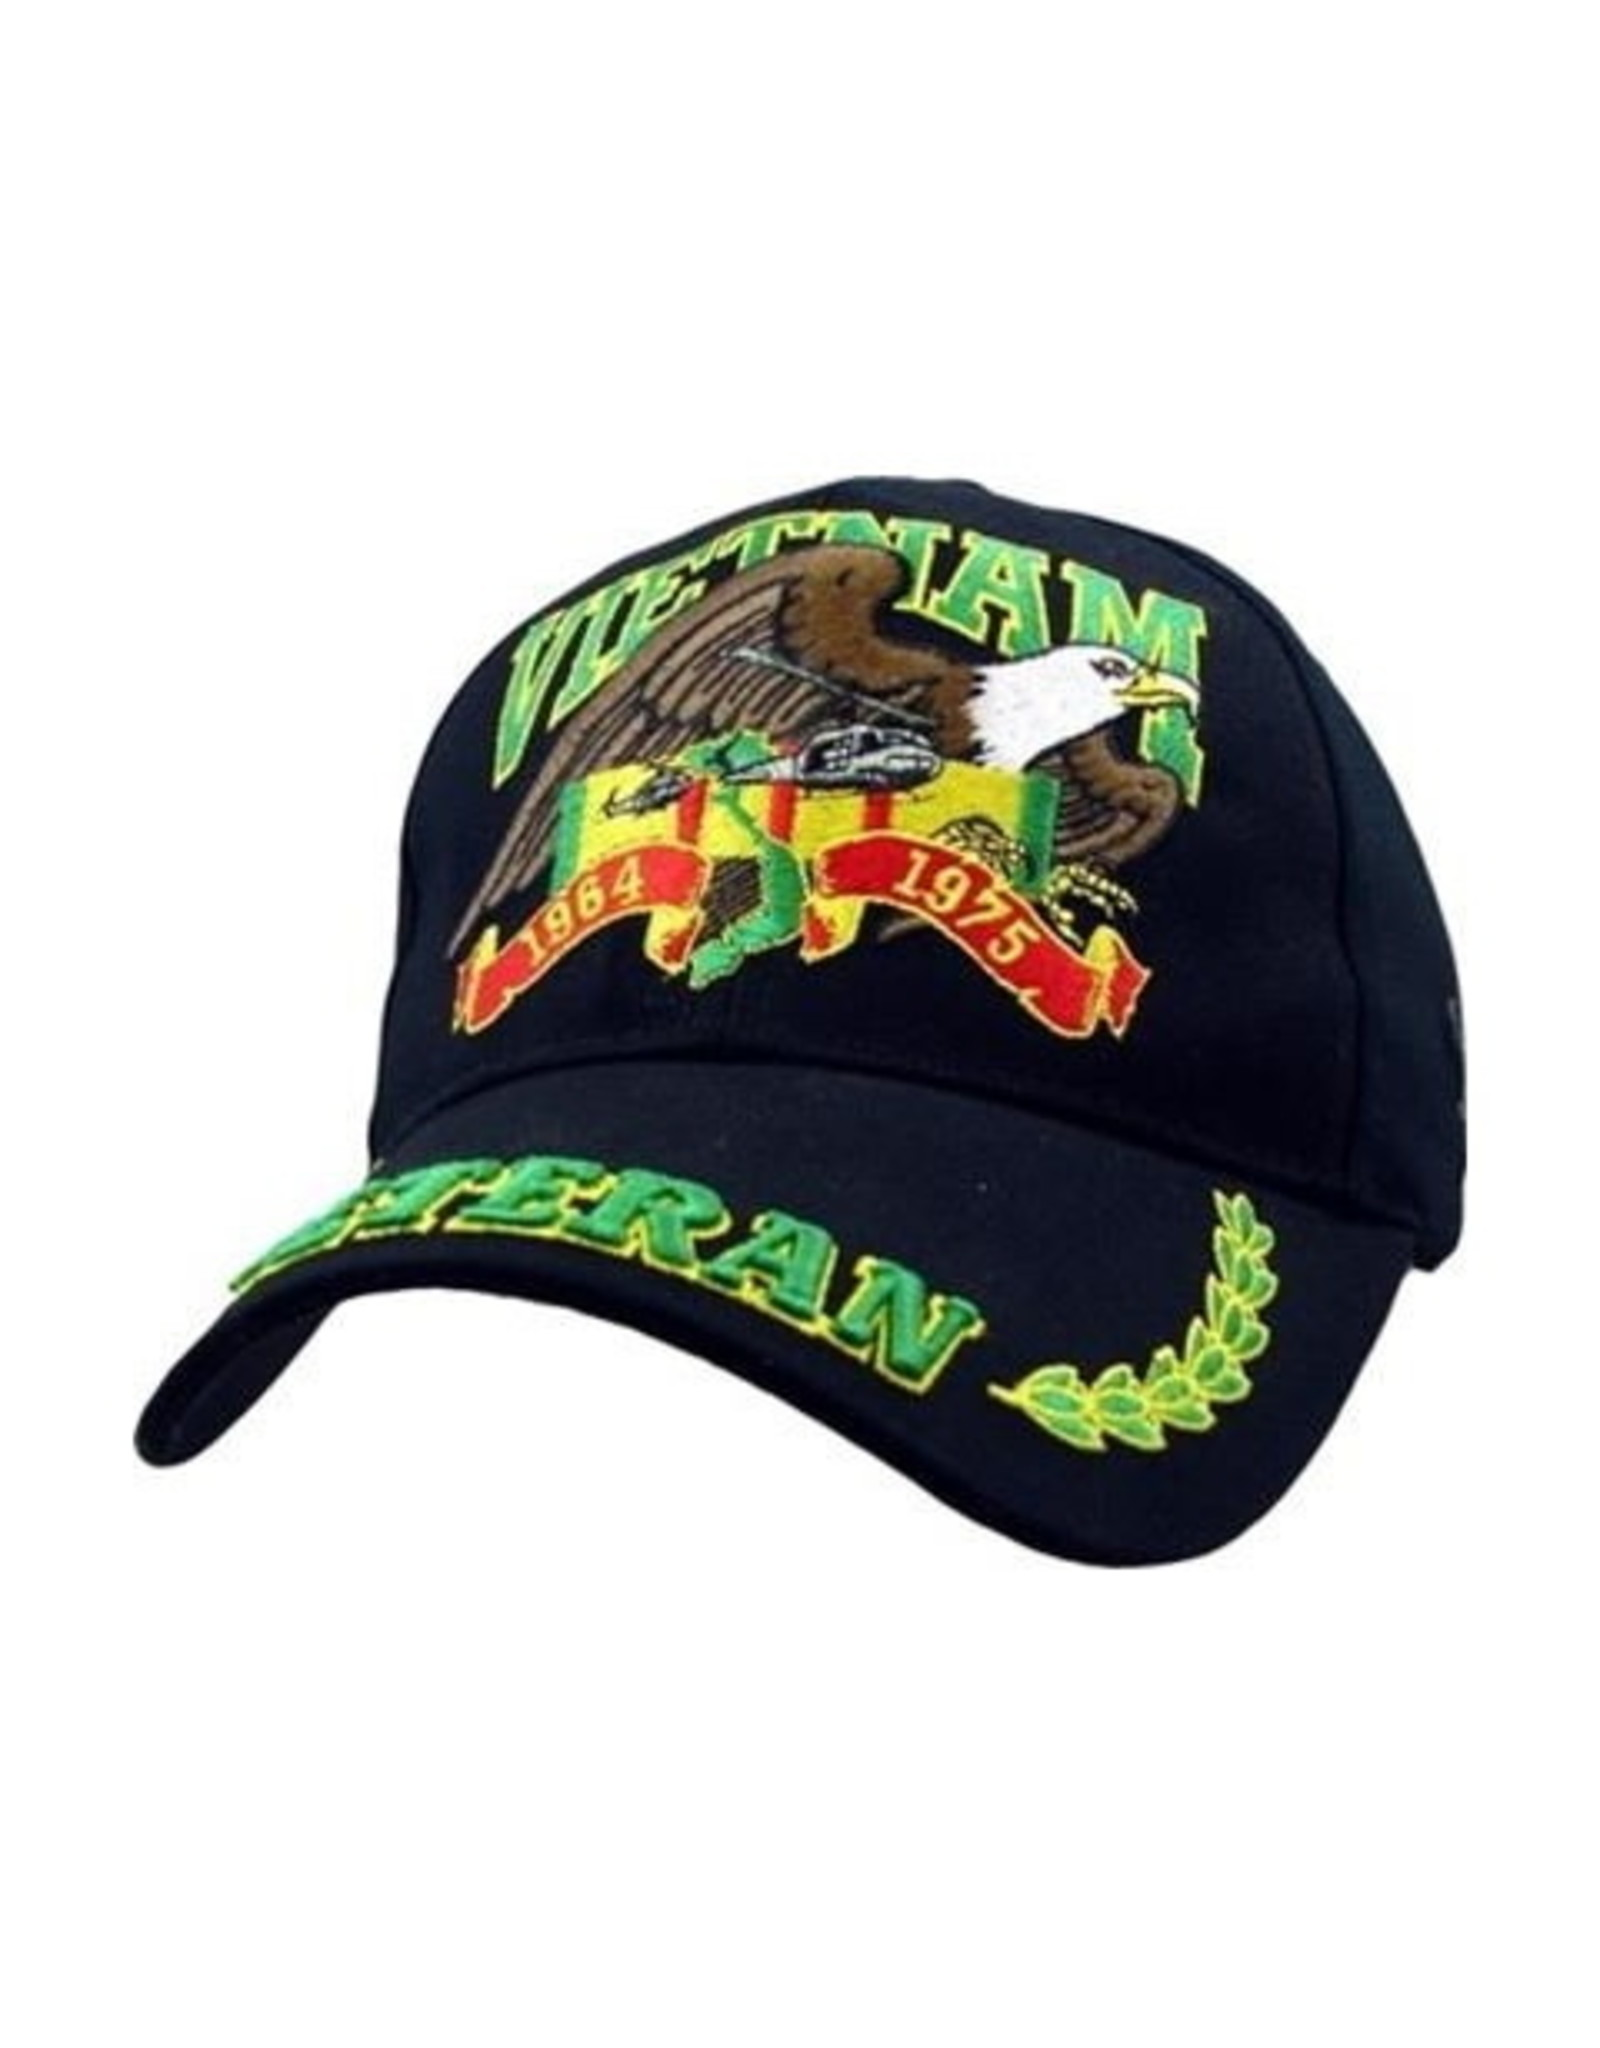 MidMil Vietnam Veteran Hat with Eagle over Service Ribbon with Veteran on bill Green/Yellow Black